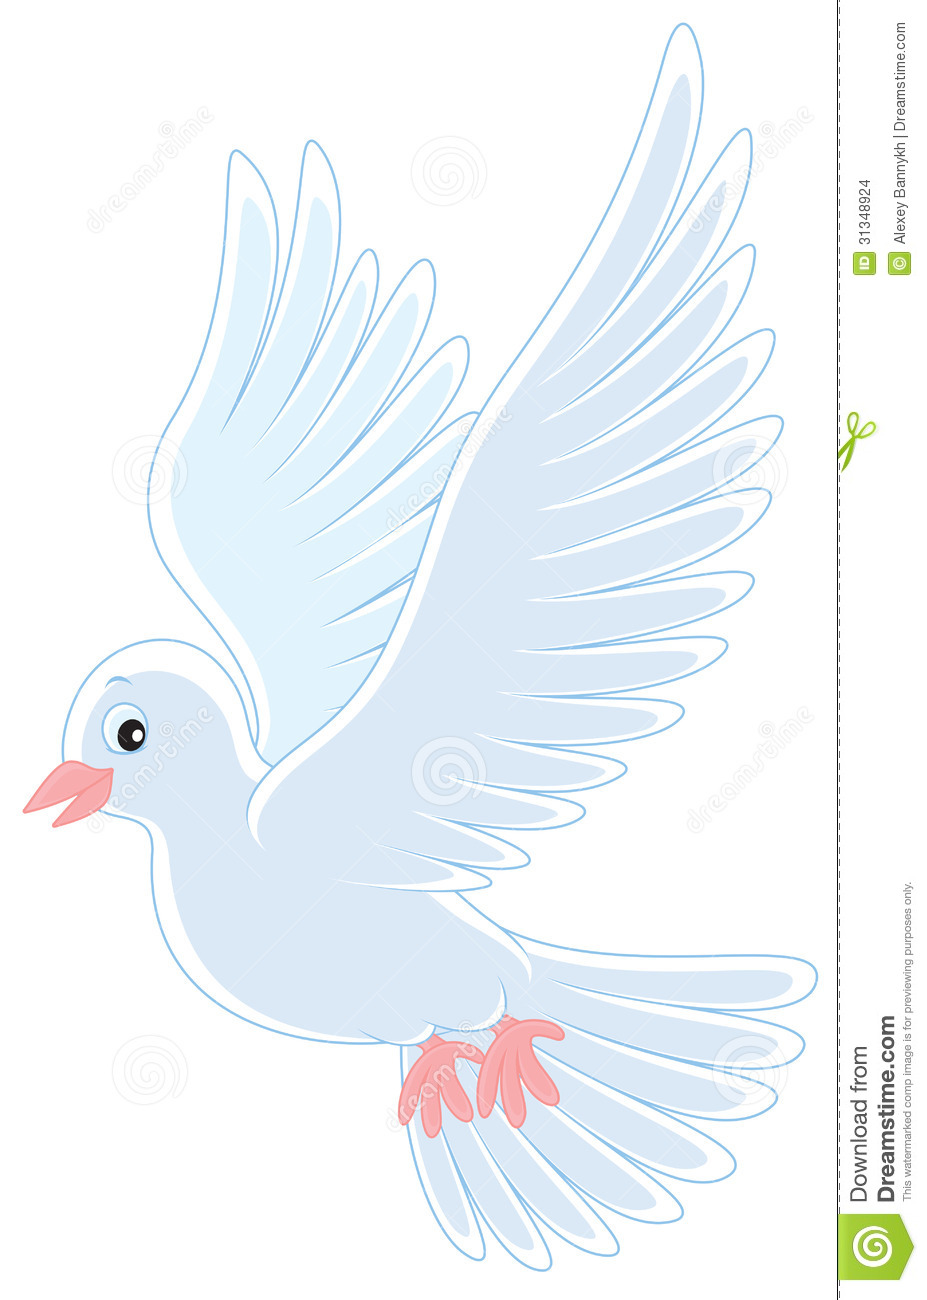 Pigeon illustration - photo#29